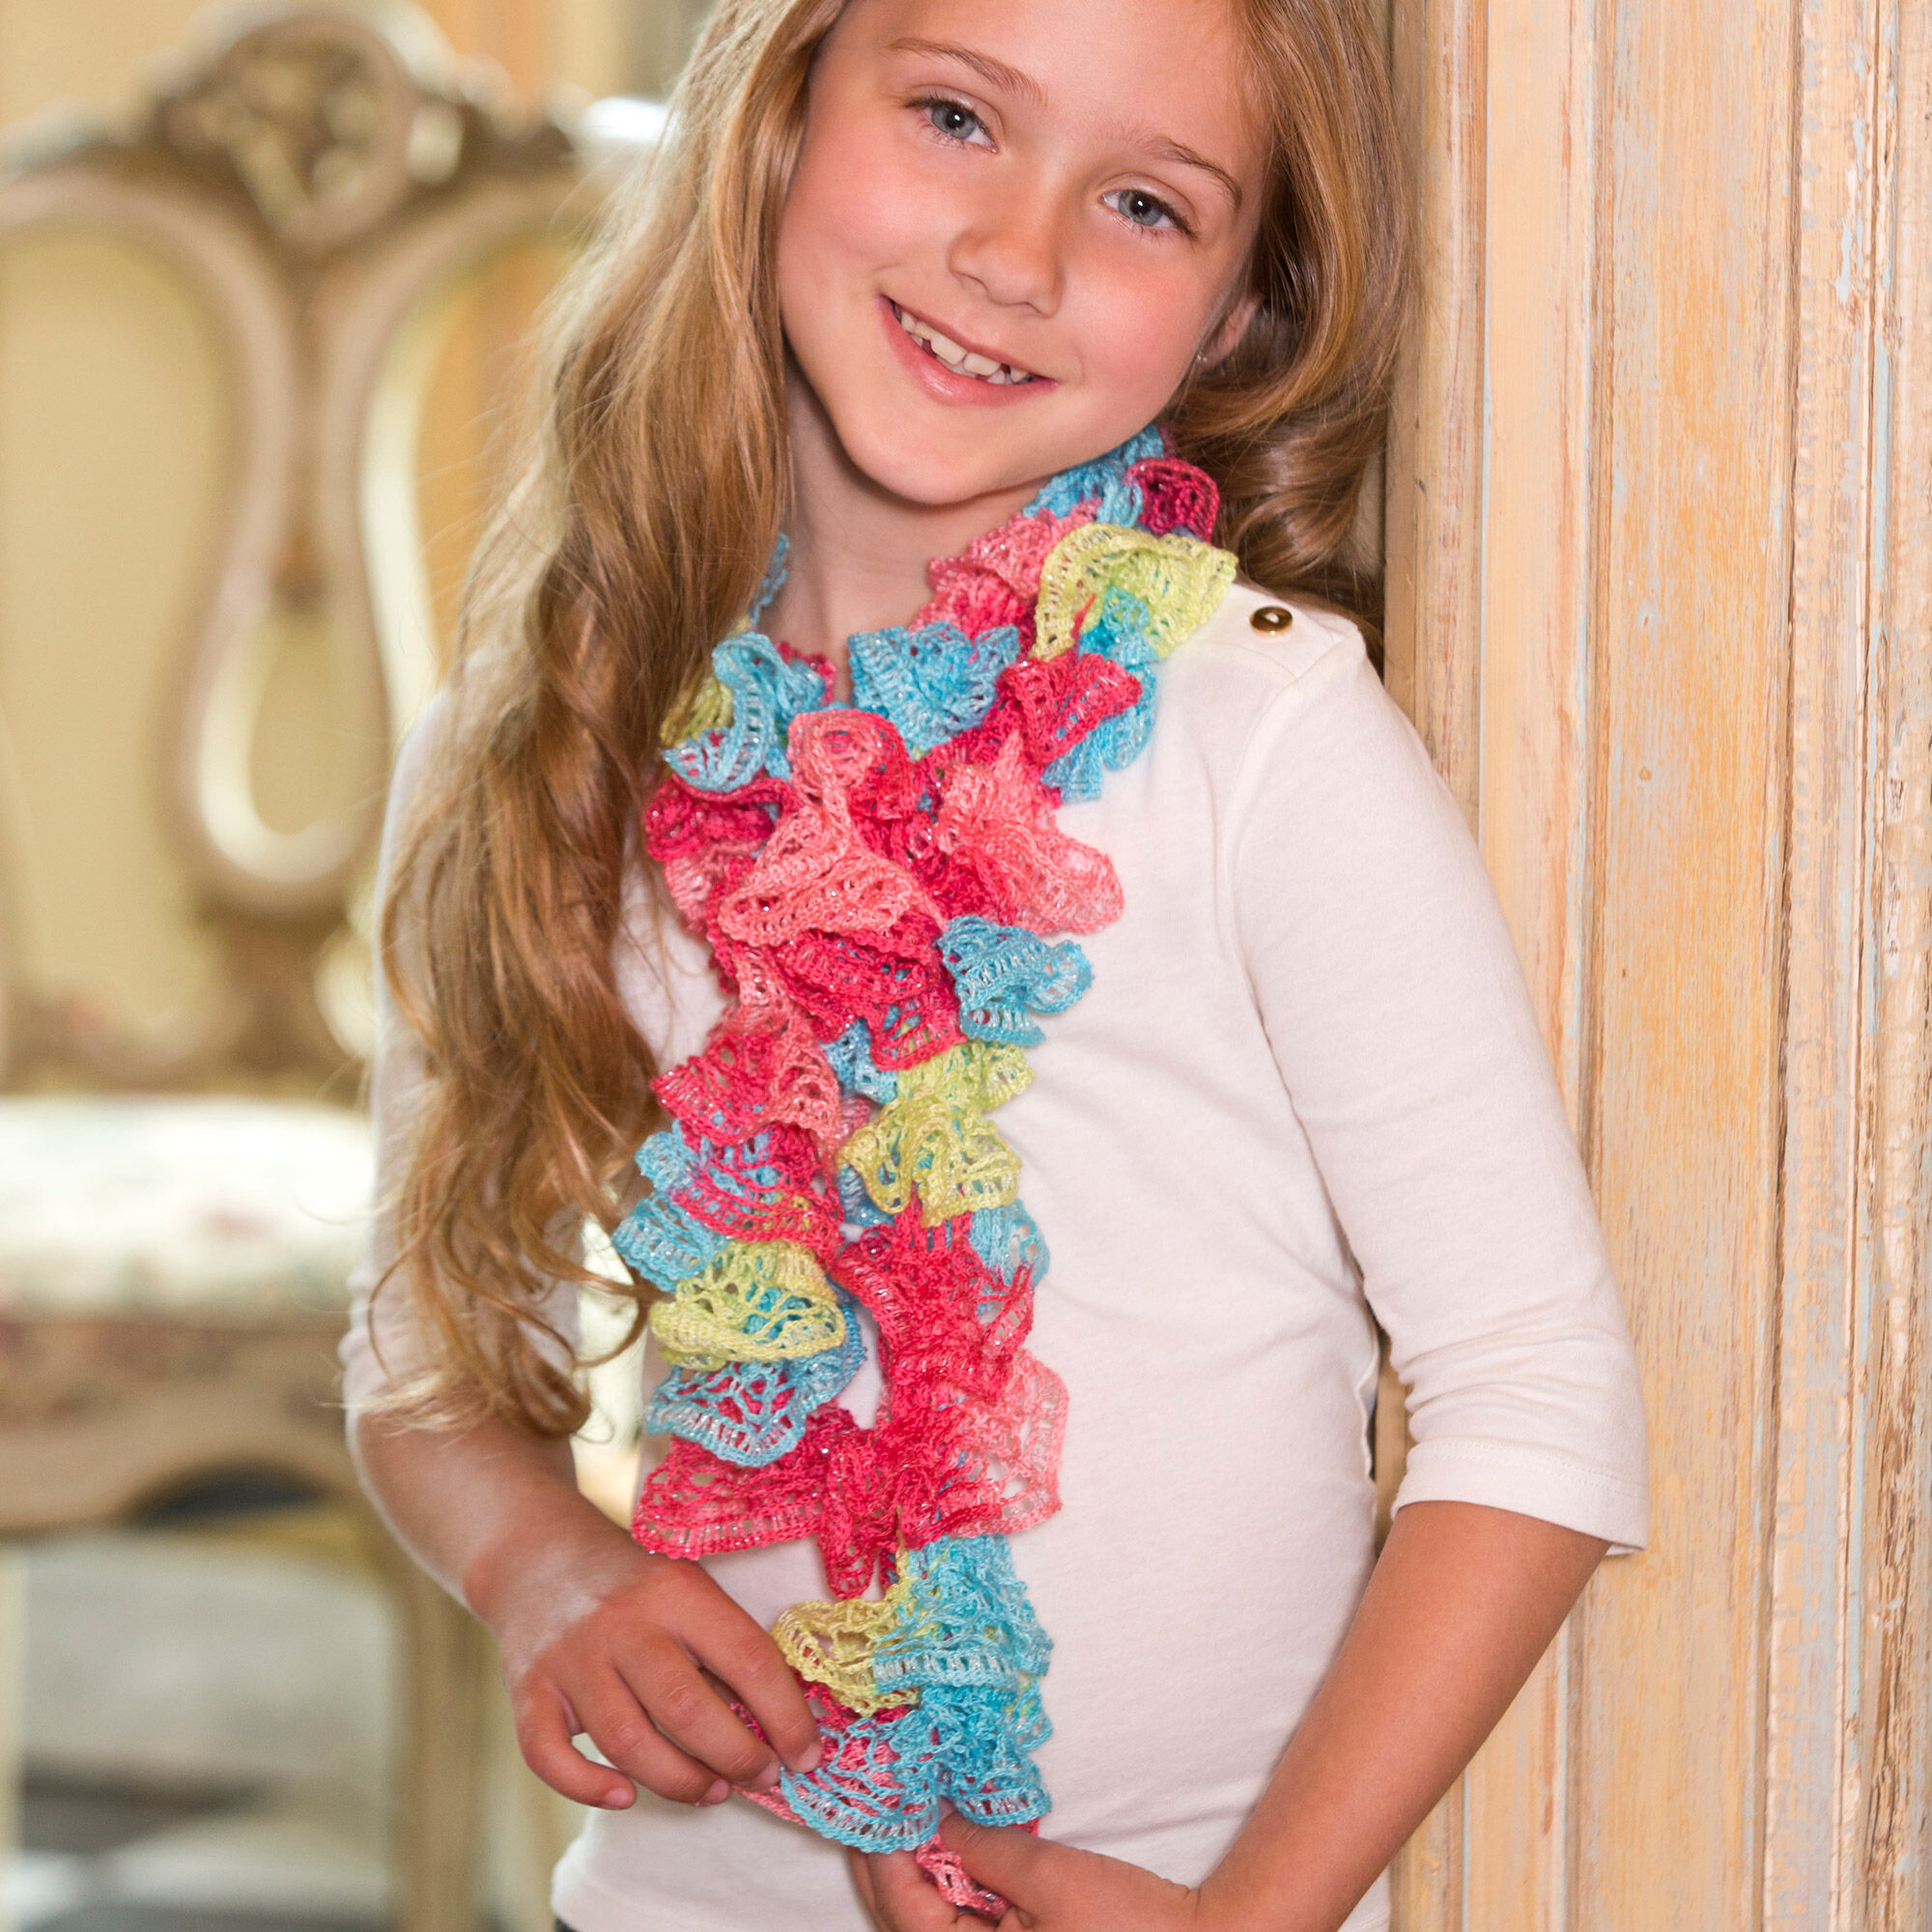 RED HEART SWEET RUFFLE SCARF